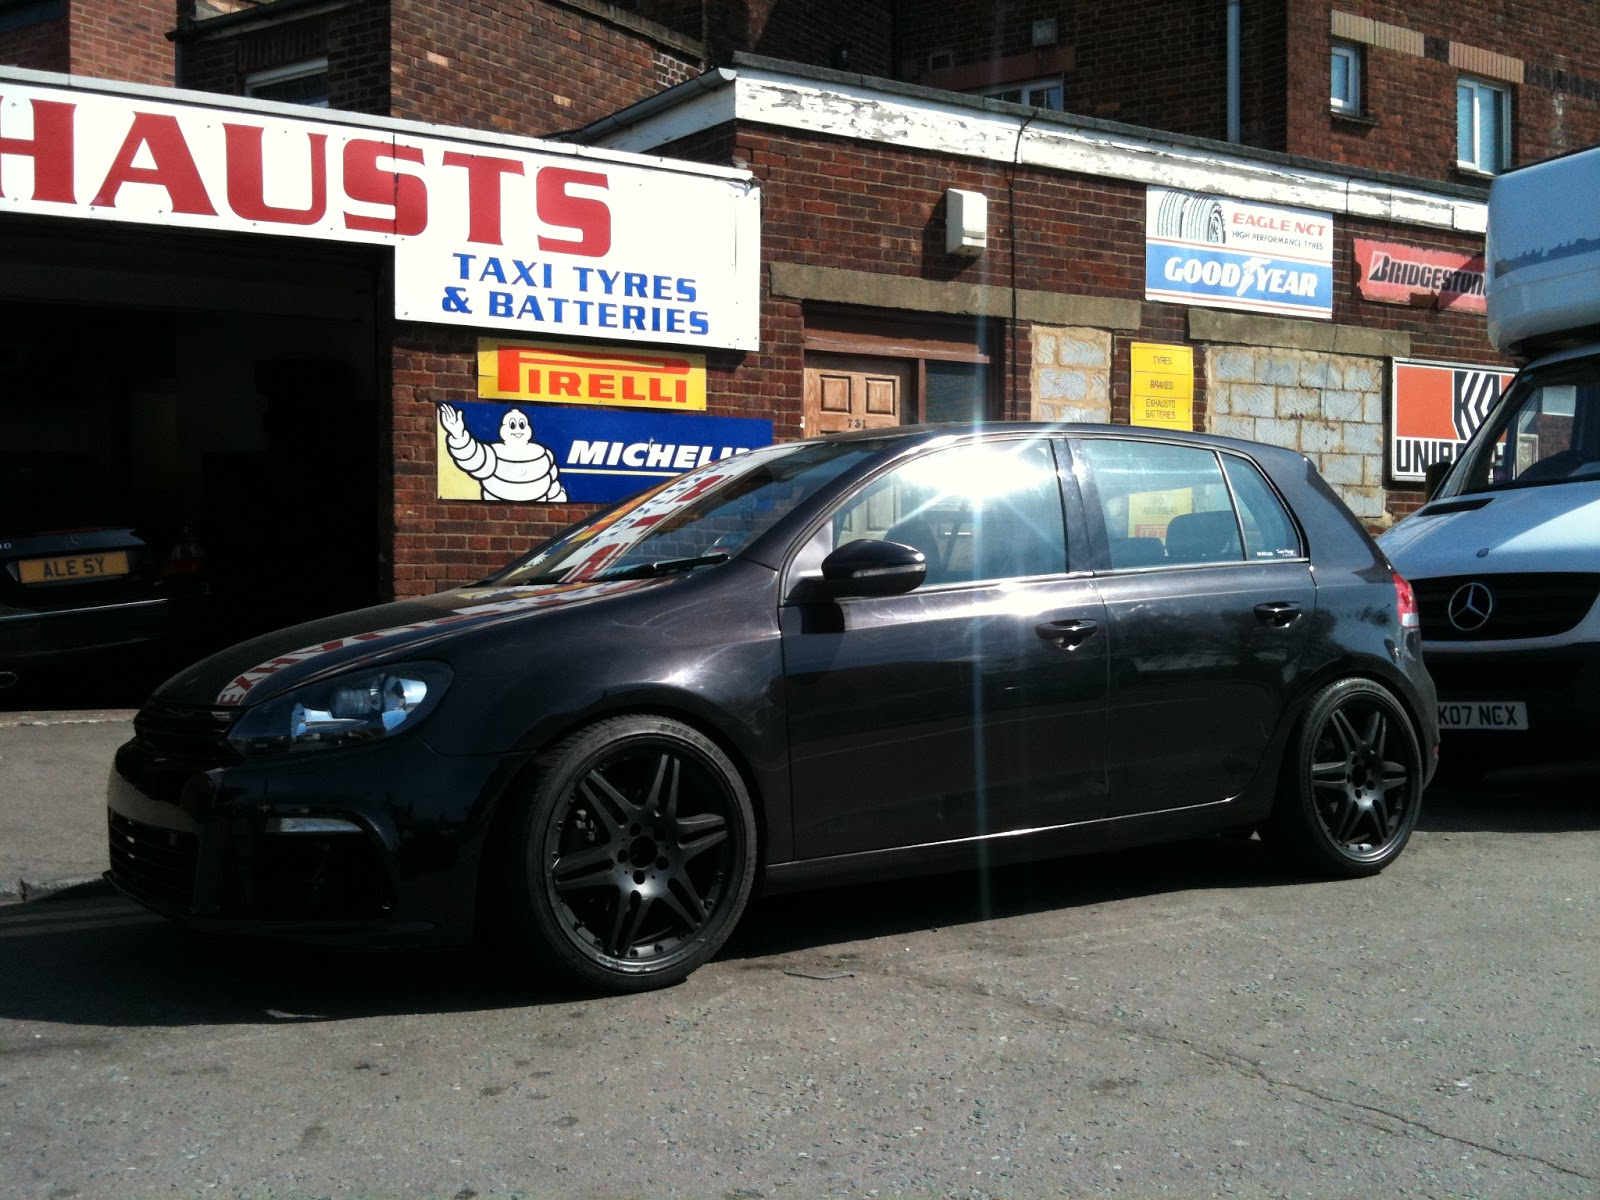 19 brabus monoblock vi wheels fitted to vw golf mk6. Black Bedroom Furniture Sets. Home Design Ideas